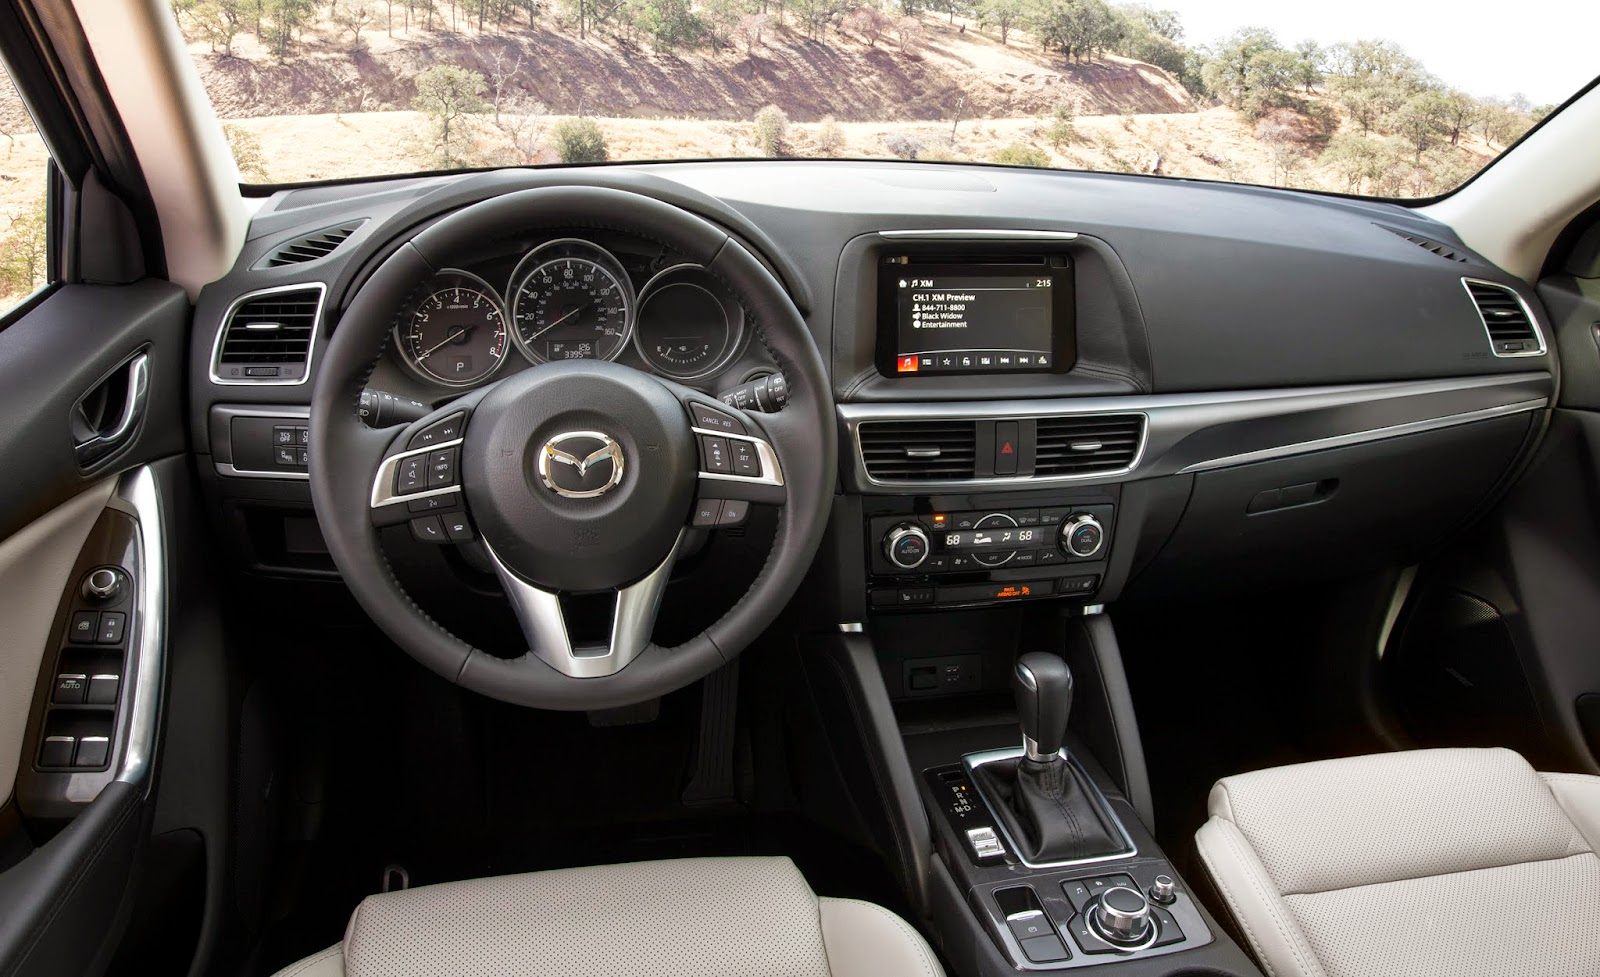 Interior view of the 2016 Mazda CX-5